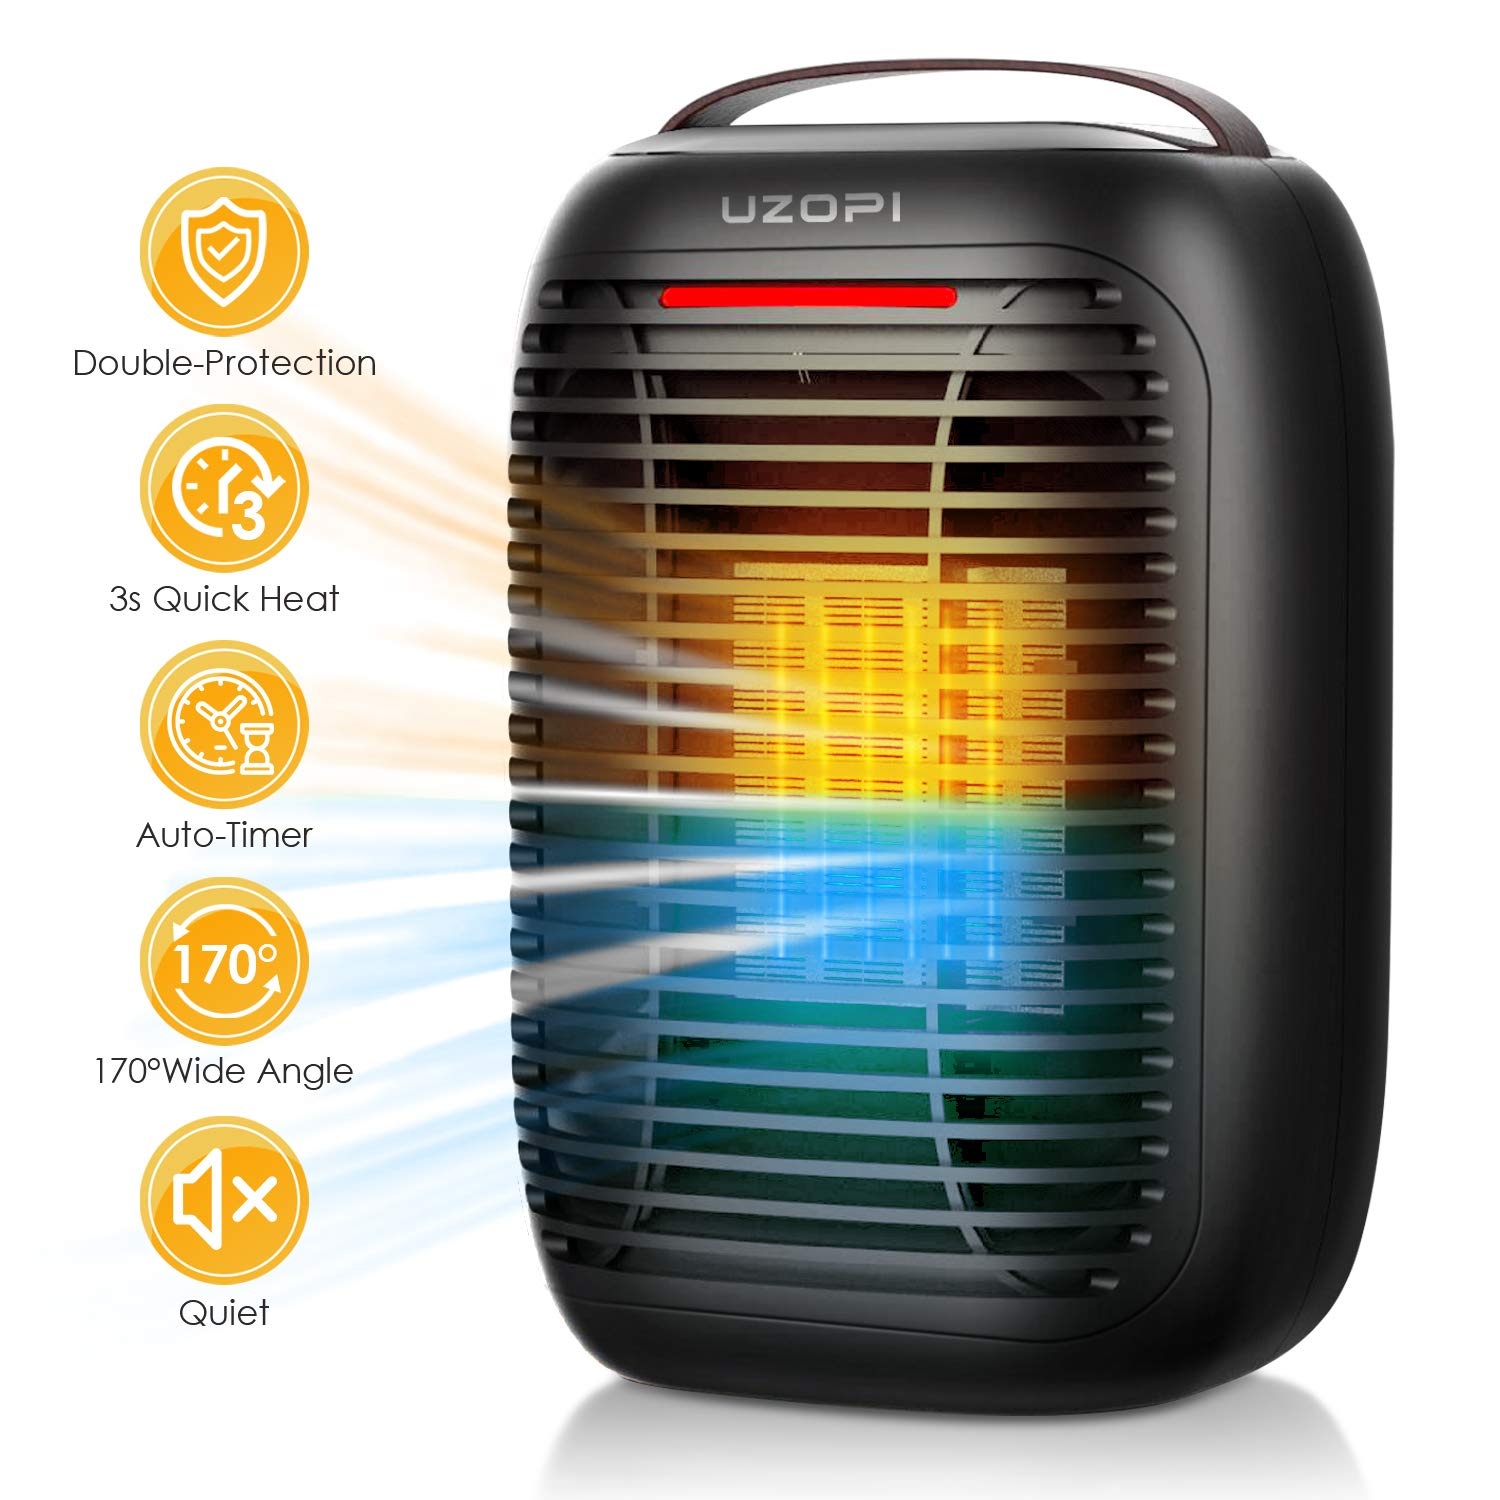 Portable Electric Ceramic Space Heater – UZOPI 950W 700W Electrical Heater Fan with Overheat Protection, Tip-Over Protection, Auto-Timer, 3 Adjustable Modes for Indoor Office Home Bedroom